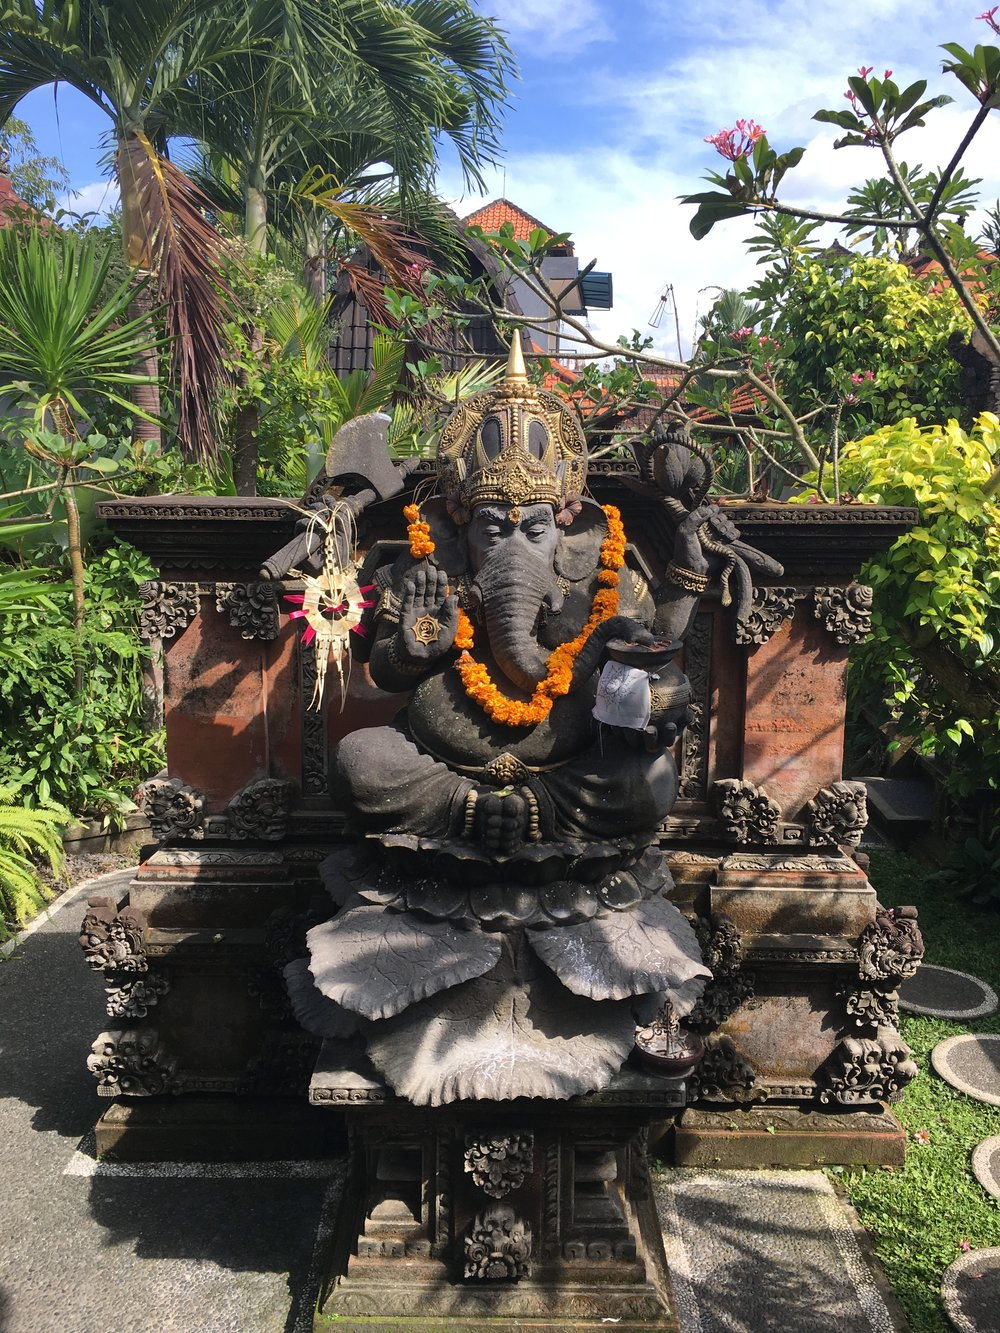 Weekly Travel Highlight: Ganesha in Ubud, Bali